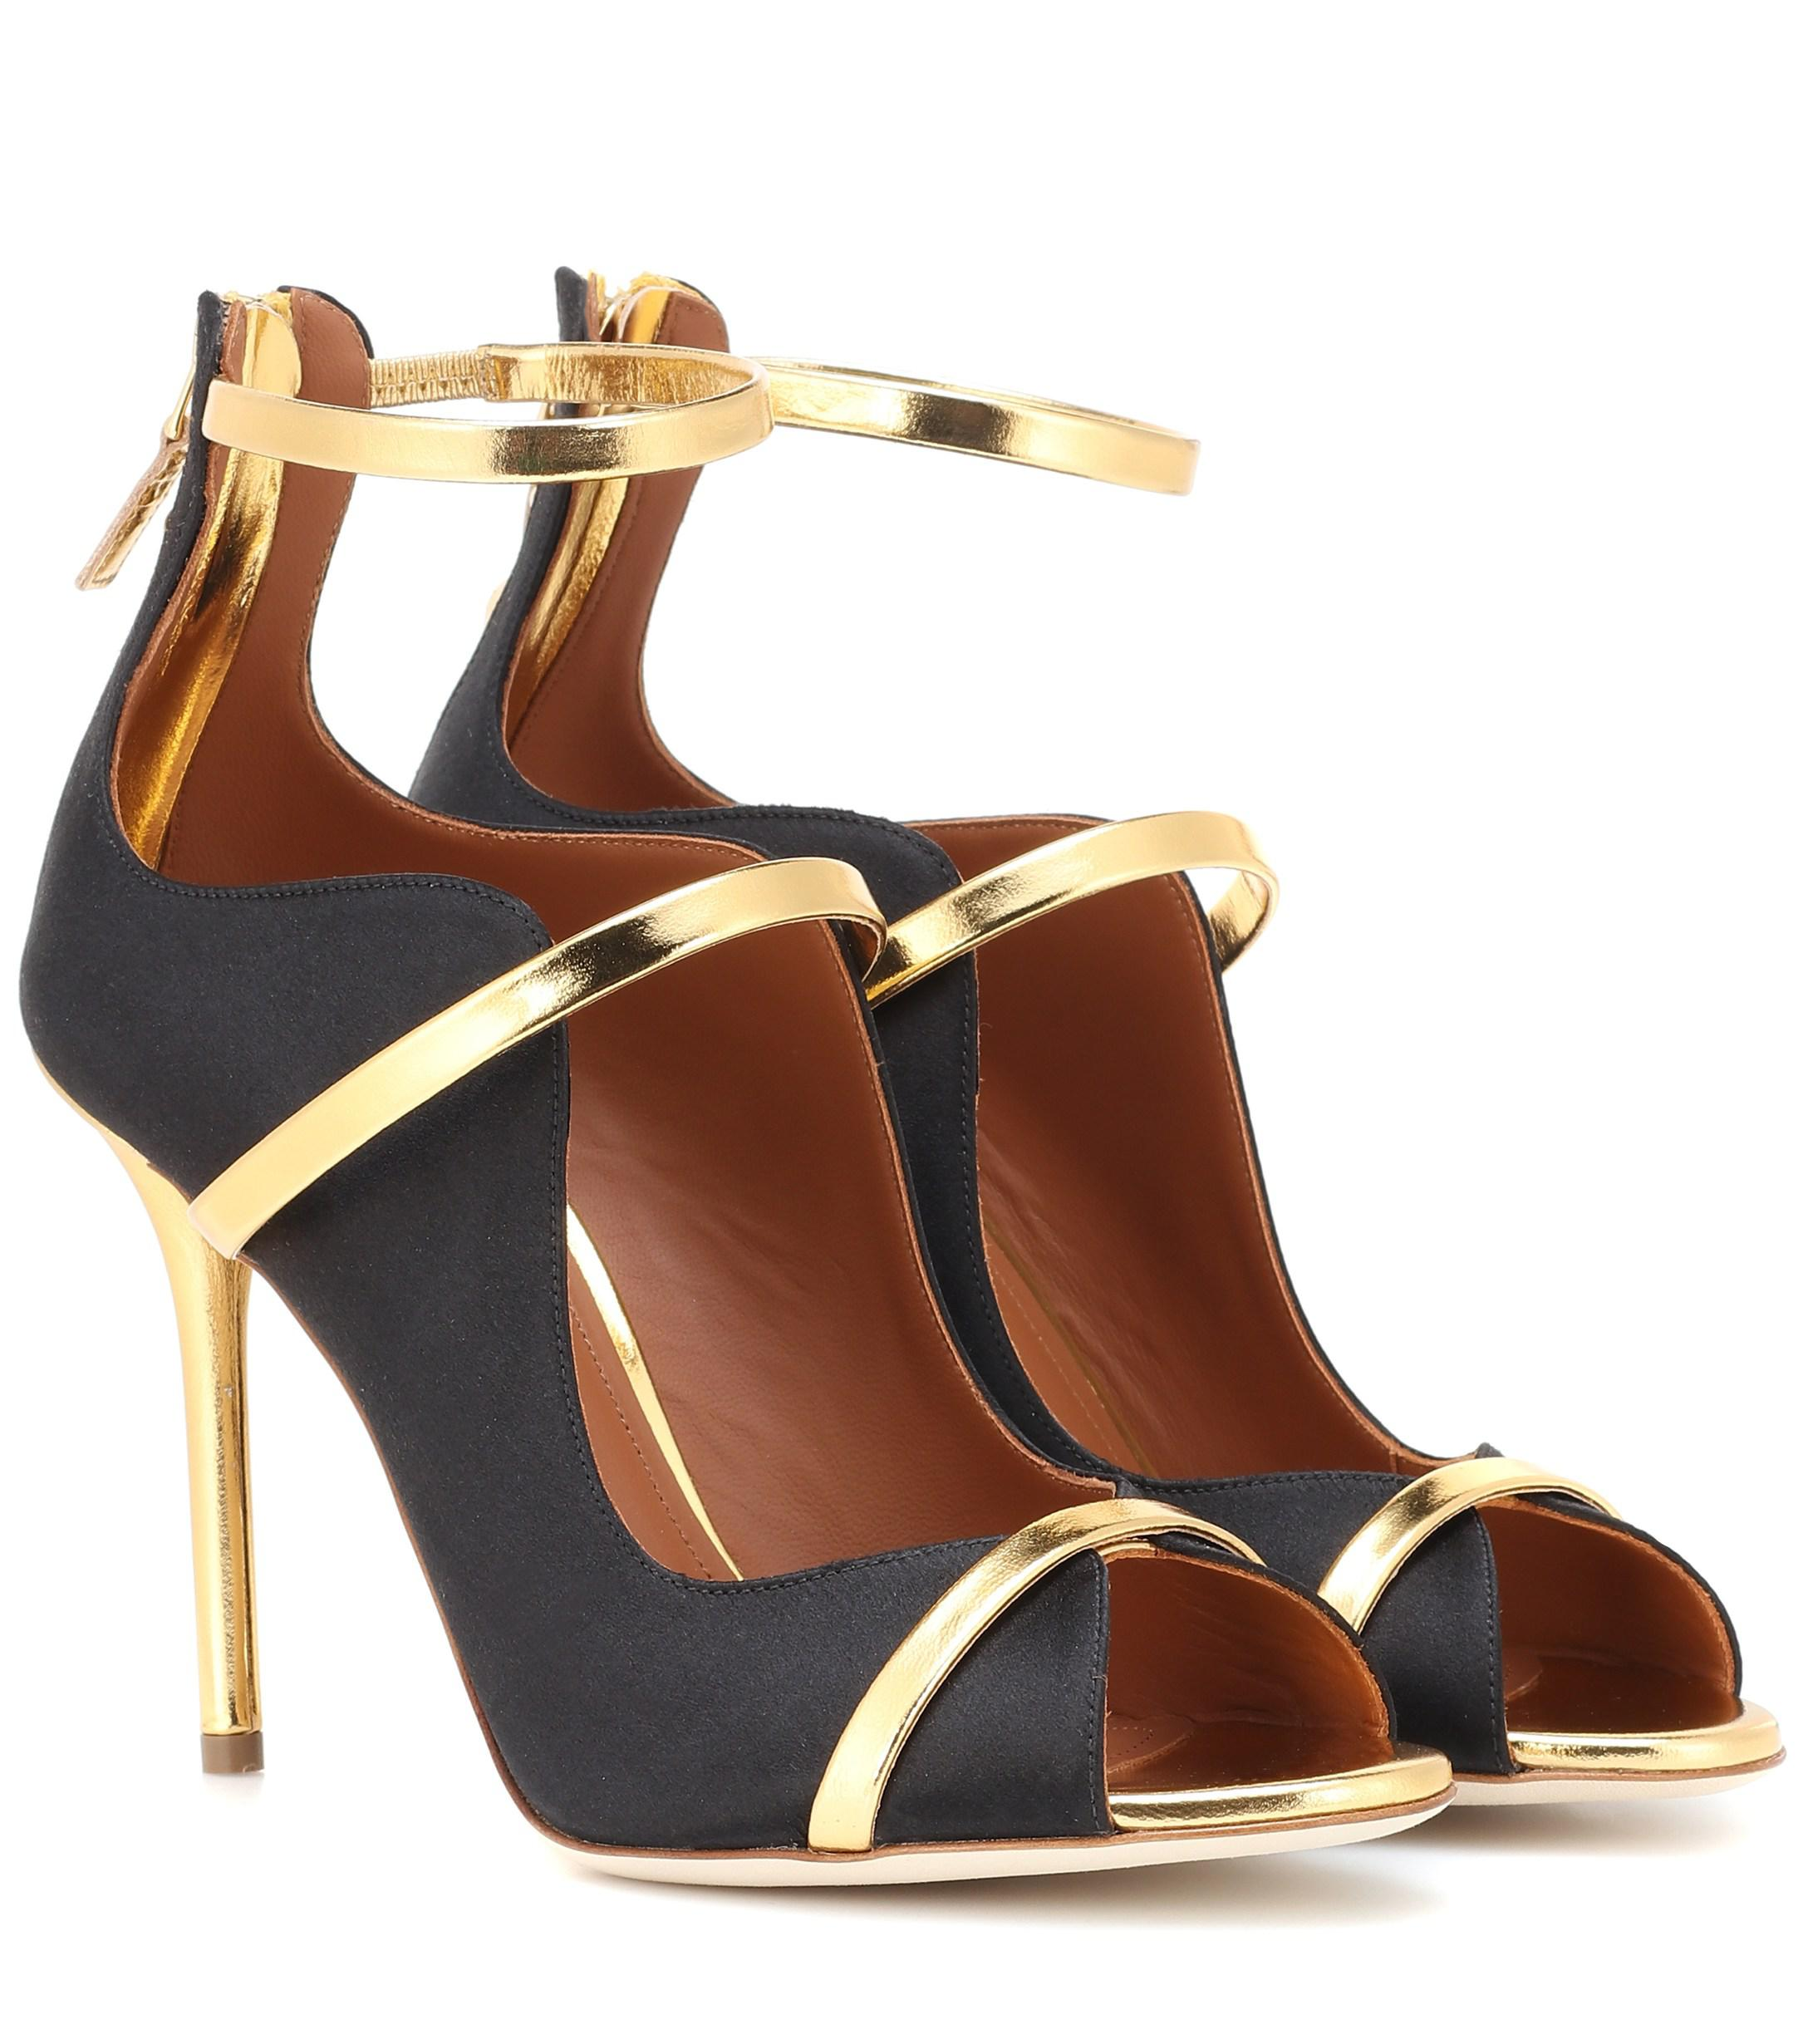 88a17cceb85 Lyst - Malone Souliers Mika Sandals in Black